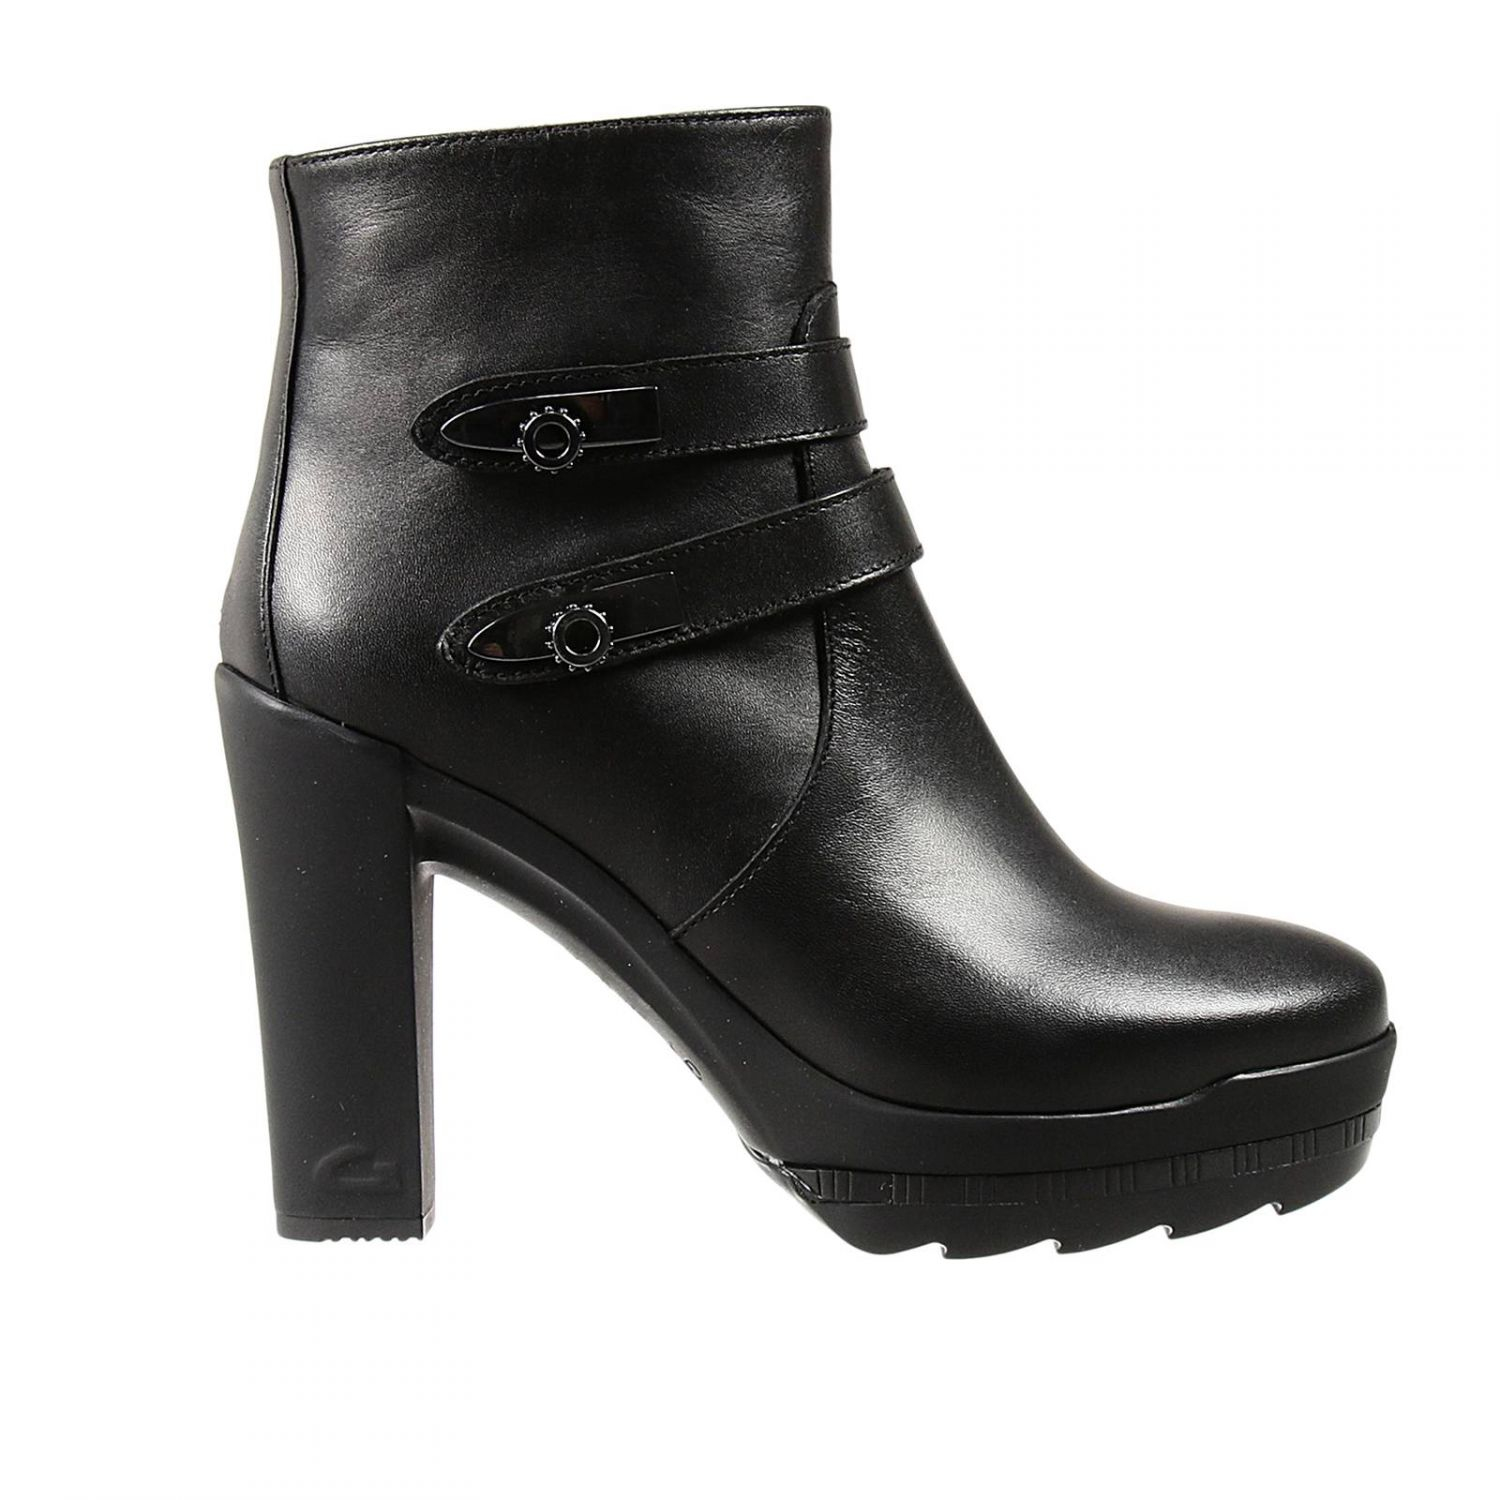 50020a2cbb1 Lyst - Alberto Guardiani Ankle Boots Karina 8+2 Heel Low Boots in Black